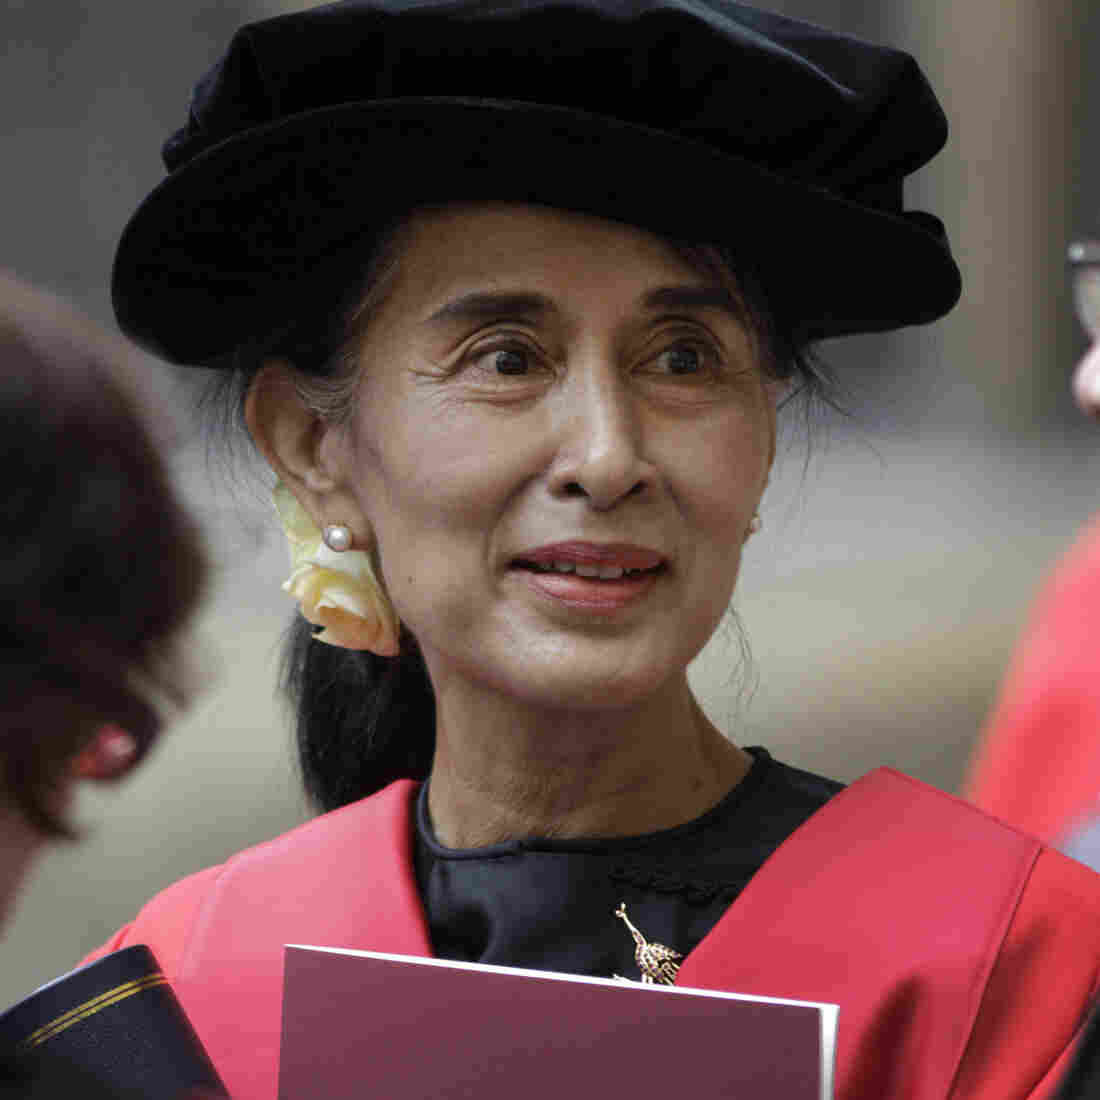 Aung San Suu Kyi finally received her honorary degree from Oxford University after it was initially awarded in 1993. In her speech, Suu Kyi praised Oxford for helping her see humankind at its best during her long years under house arrest in Myanmar.